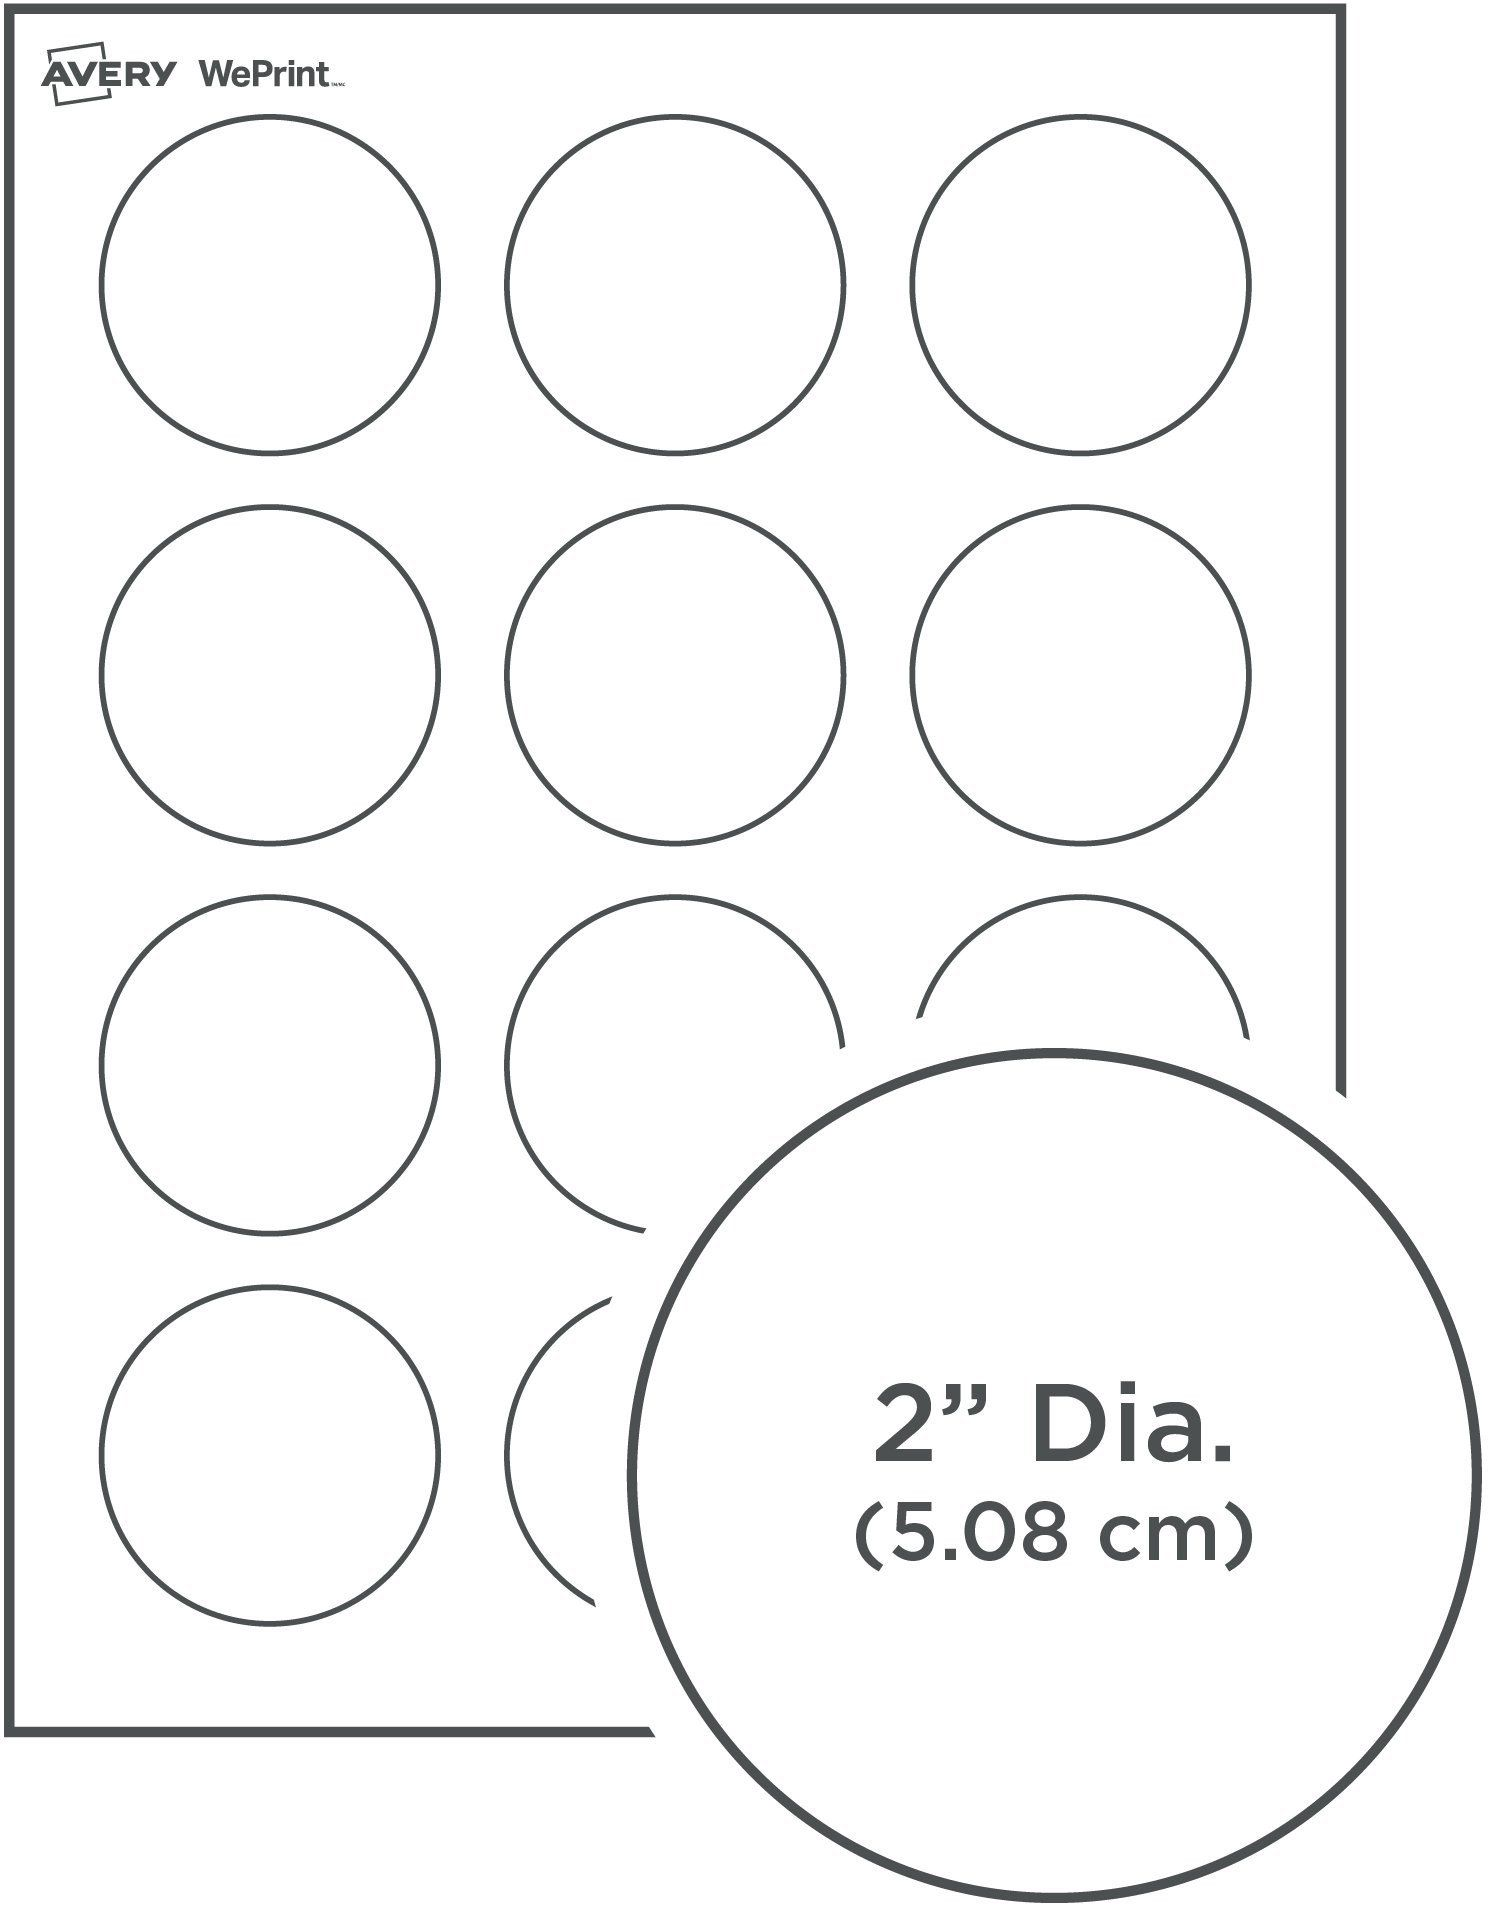 30 2 Inch Round Label Template Simple Template Design Circle Labels Avery Round Labels Printable Label Templates